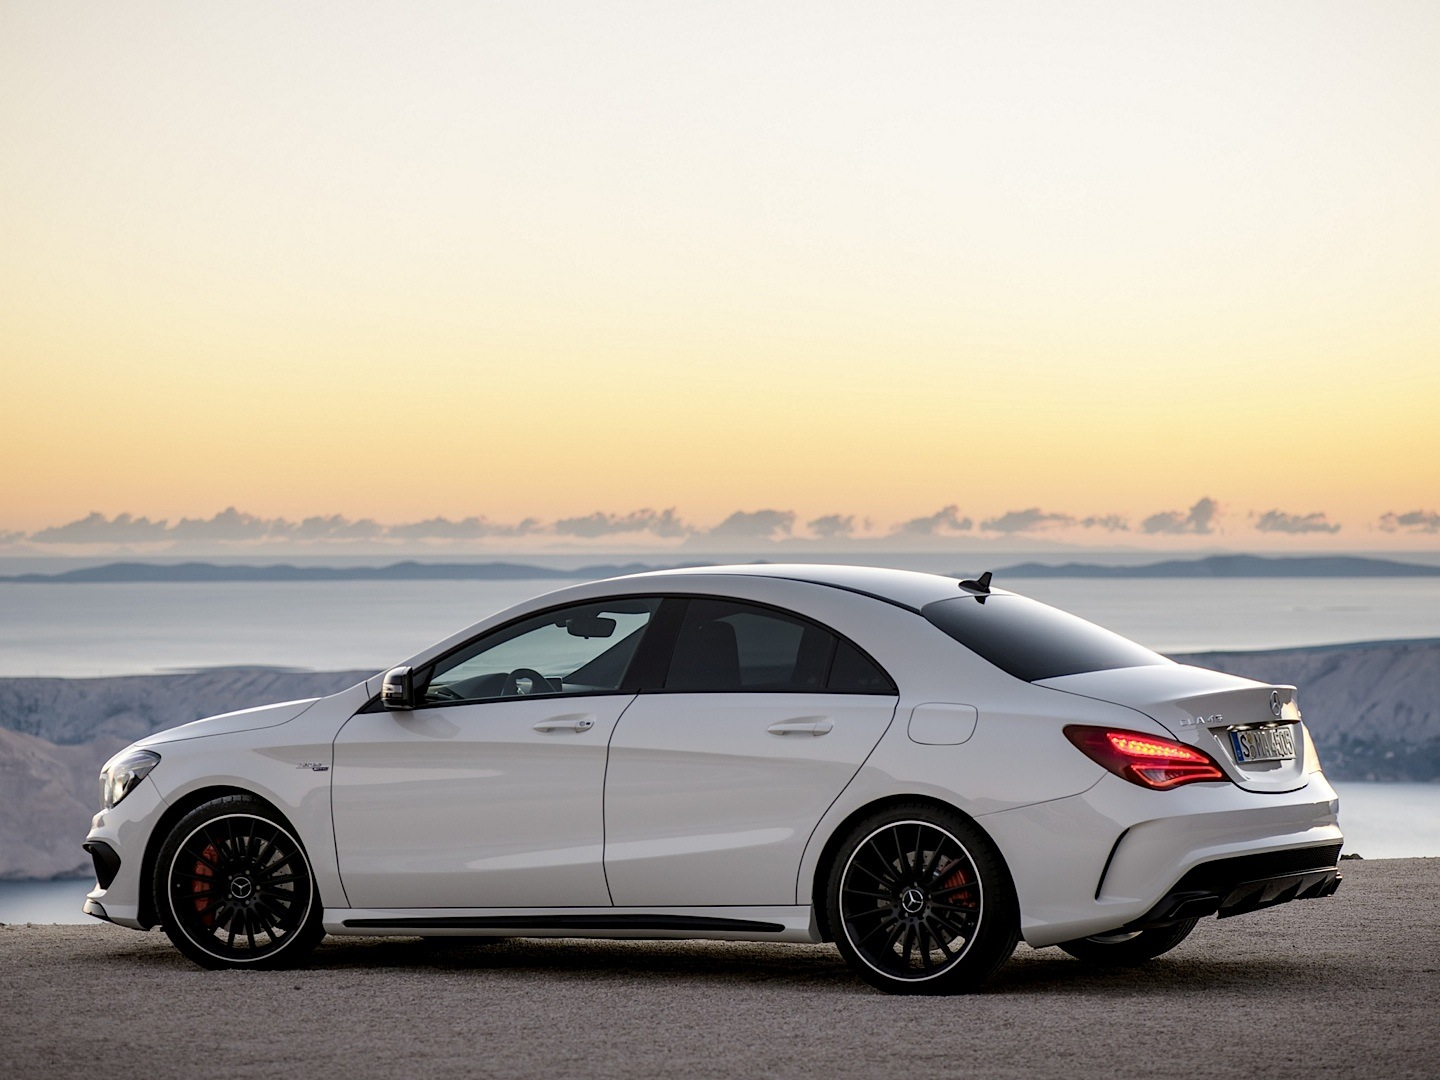 Used Suvs Near Me >> Mb Cla 45 Amg Review | Autos Post